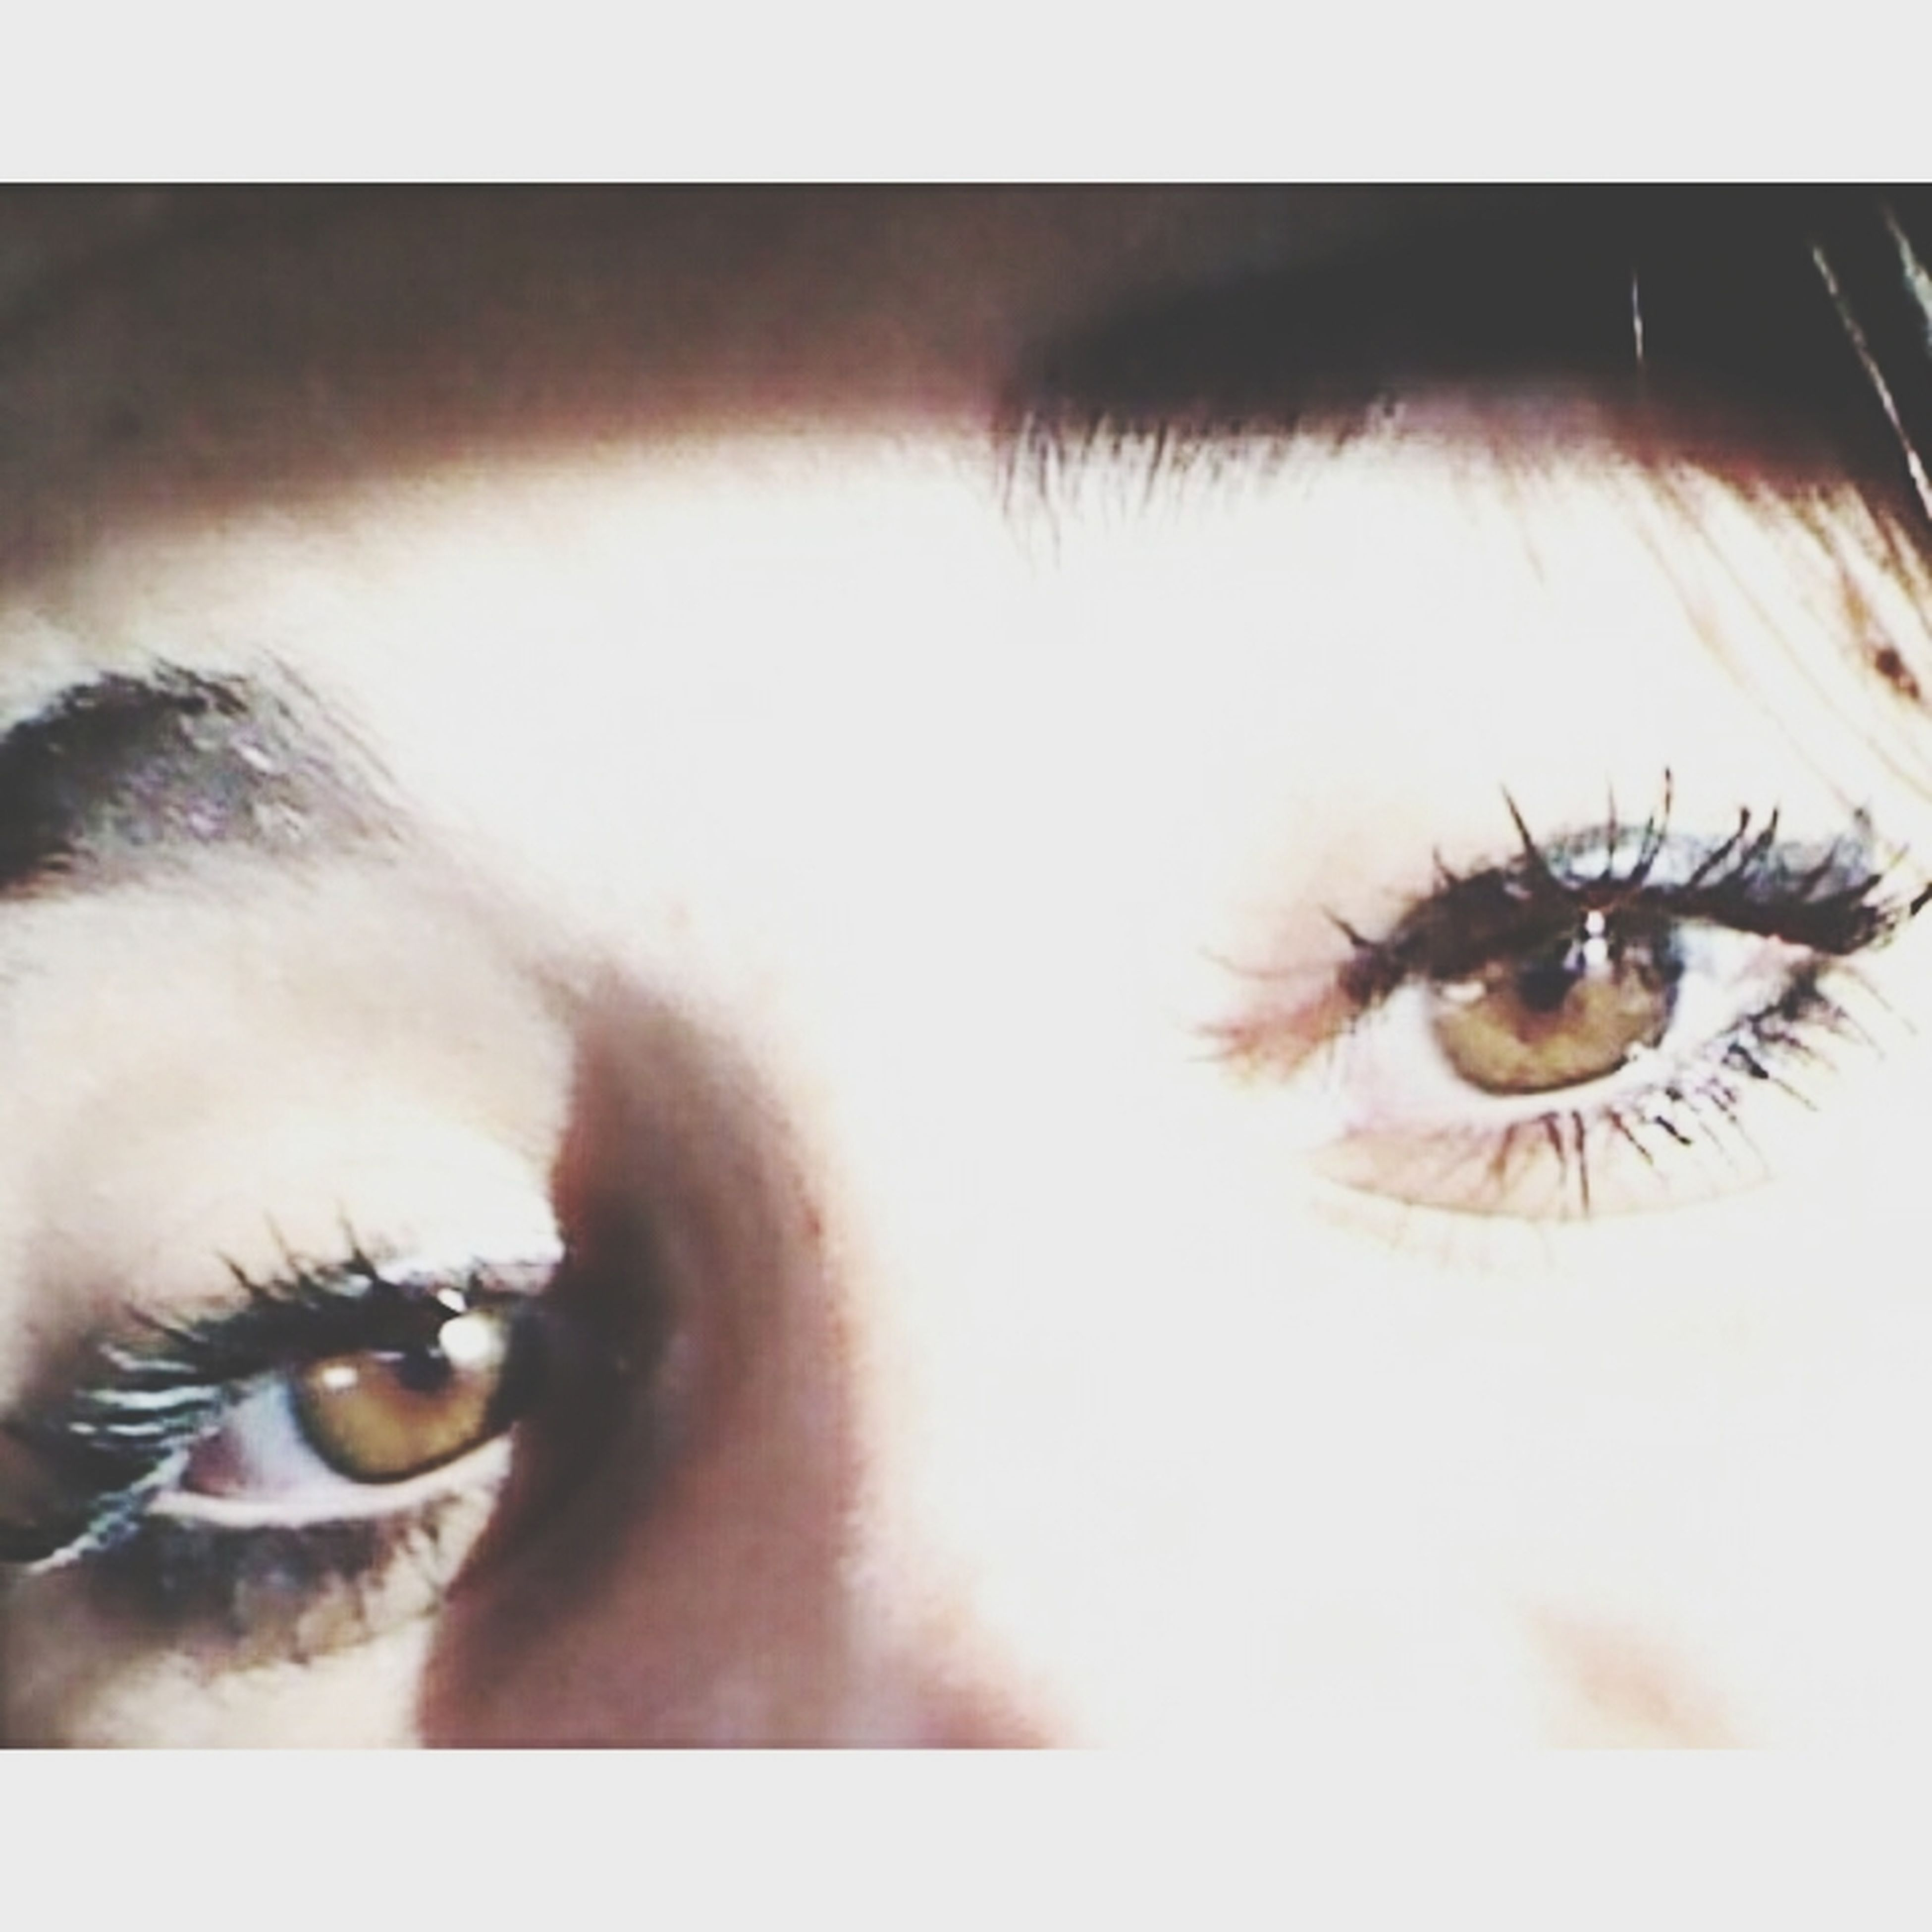 transfer print, auto post production filter, close-up, indoors, part of, human eye, person, looking at camera, human skin, sensory perception, lifestyles, unrecognizable person, human finger, portrait, eyelash, cropped, eyesight